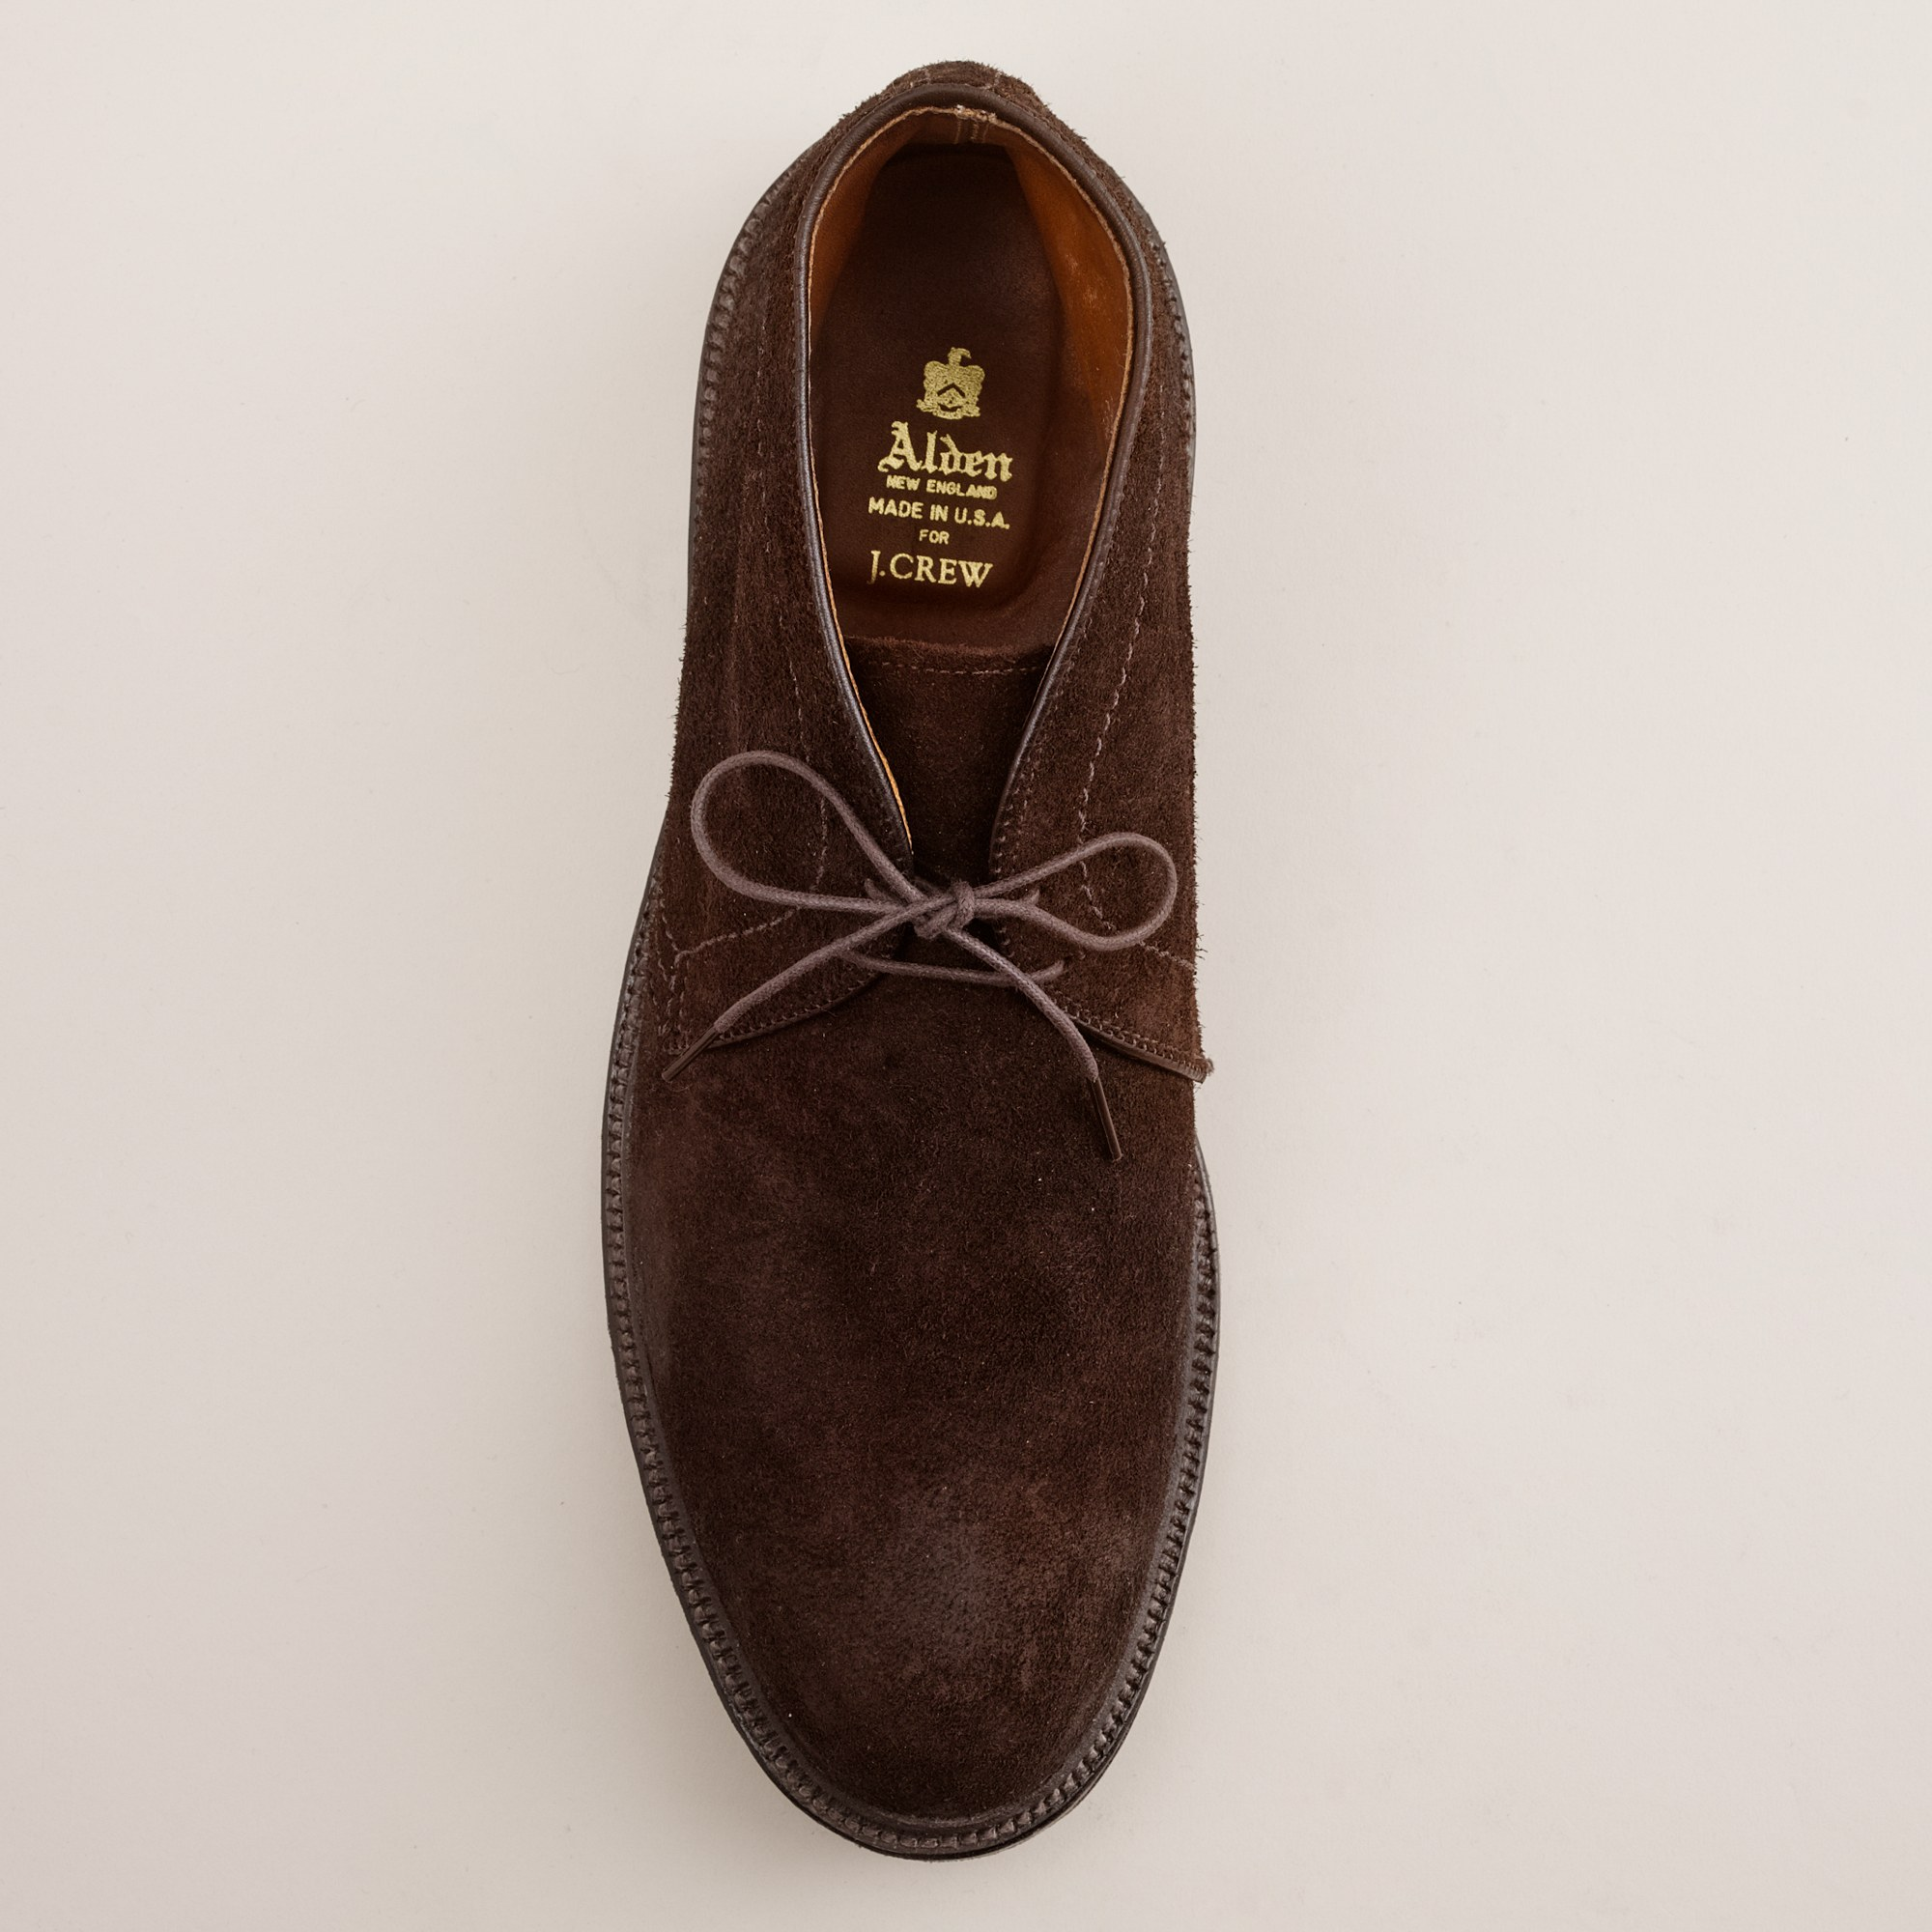 J.crew Alden® For J.crew Roughed-out Suede Chukka Boots in Brown ...